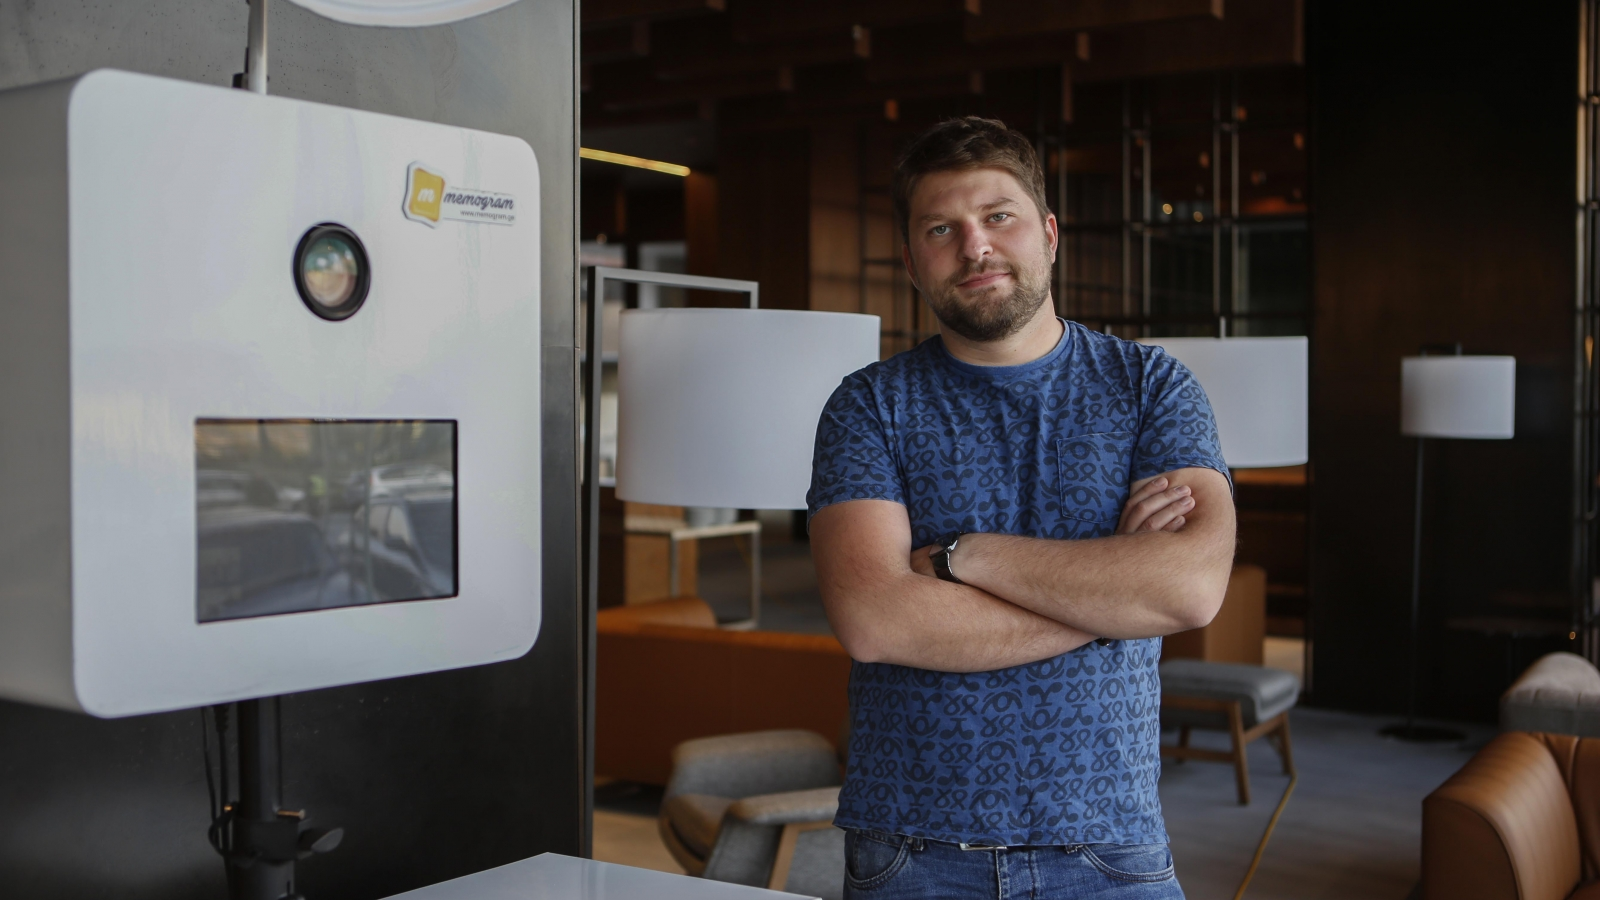 Gabriel Meliva is the founder of 'Memogram' company